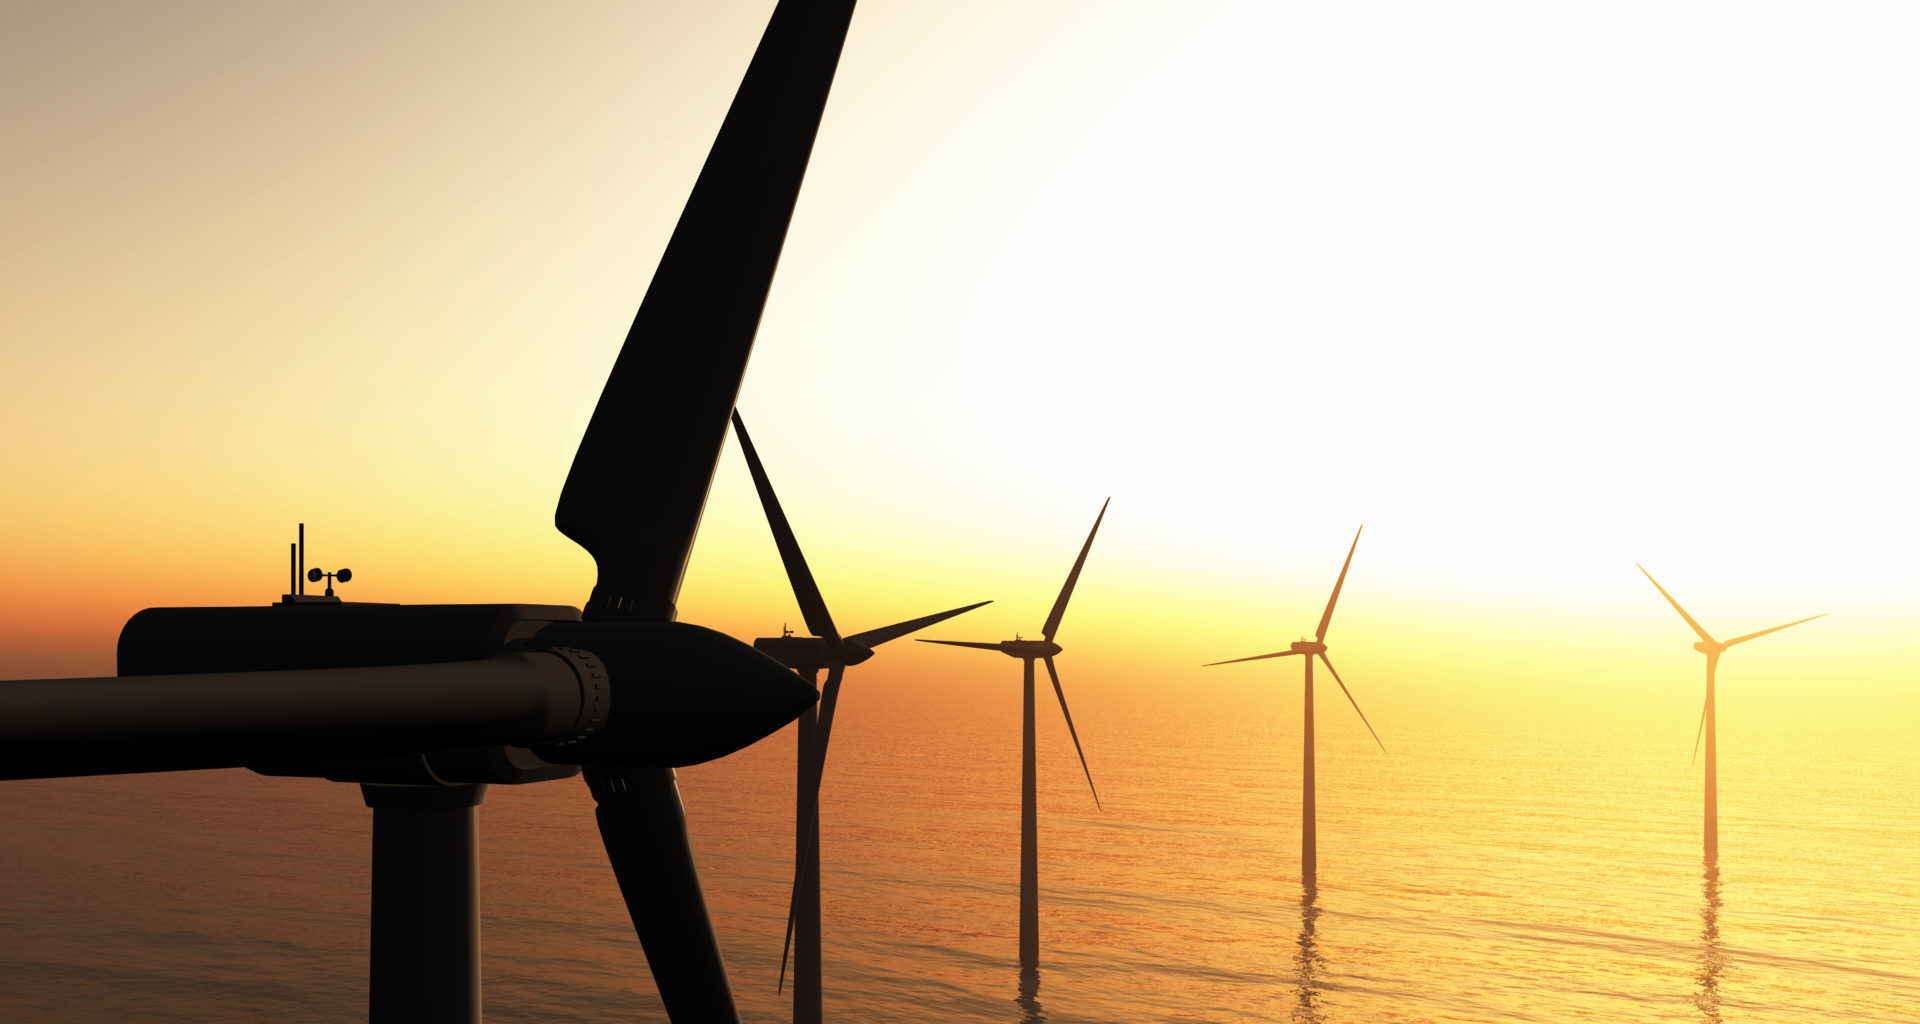 Blog: Net zero and net gain – The environmental challenges of upscaling marine renewables